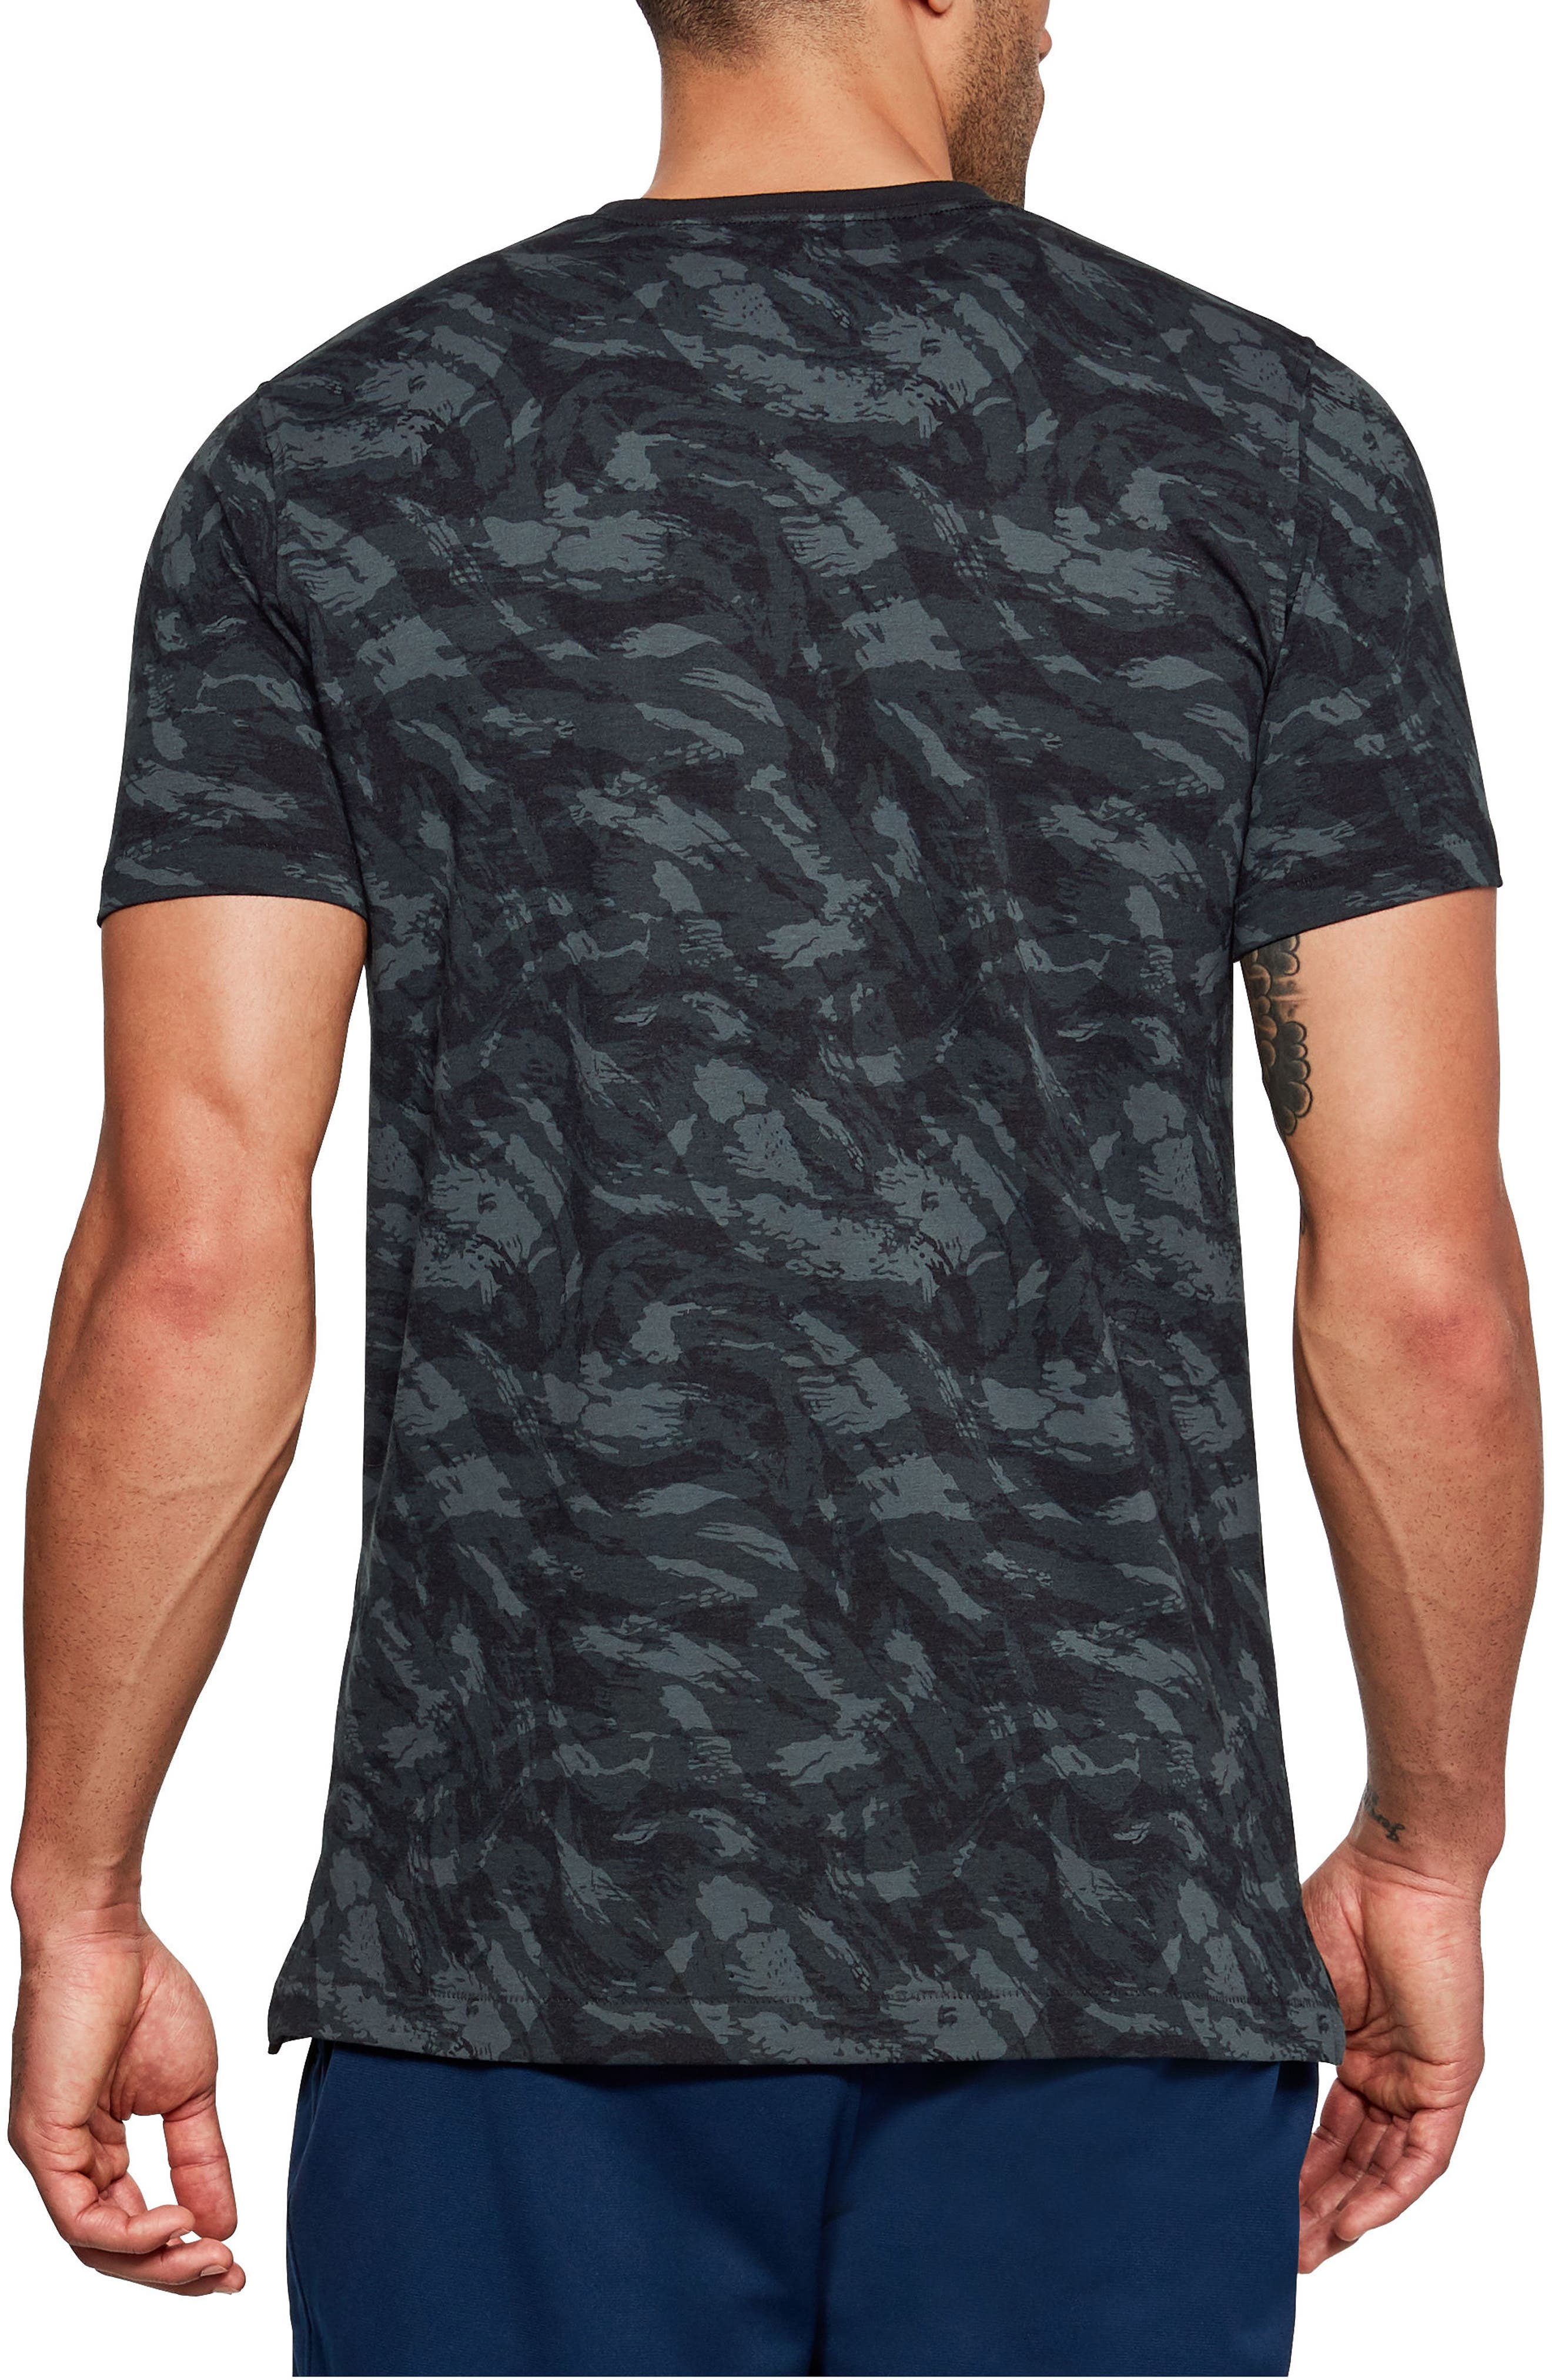 Sportstyle Print Charged Cotton<sup>®</sup> Fitted T-Shirt,                             Alternate thumbnail 2, color,                             Black/ Black